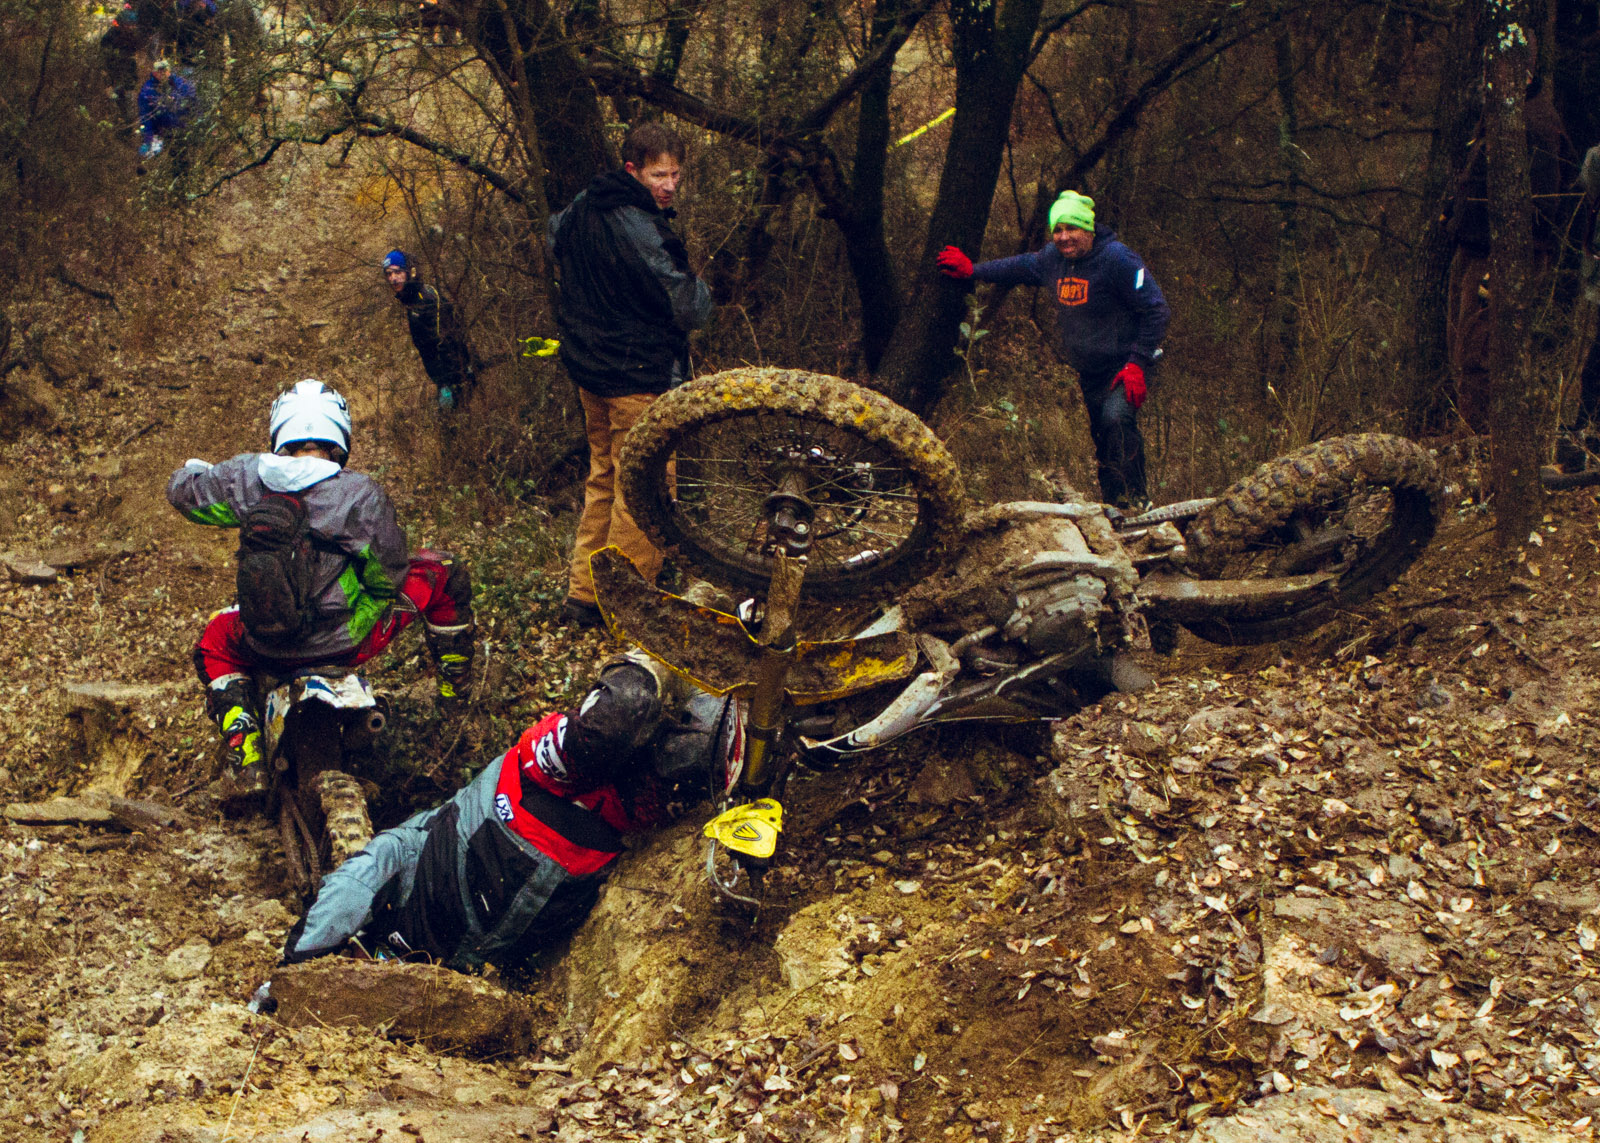 revlimiter-extreme-enduro-saturday-24